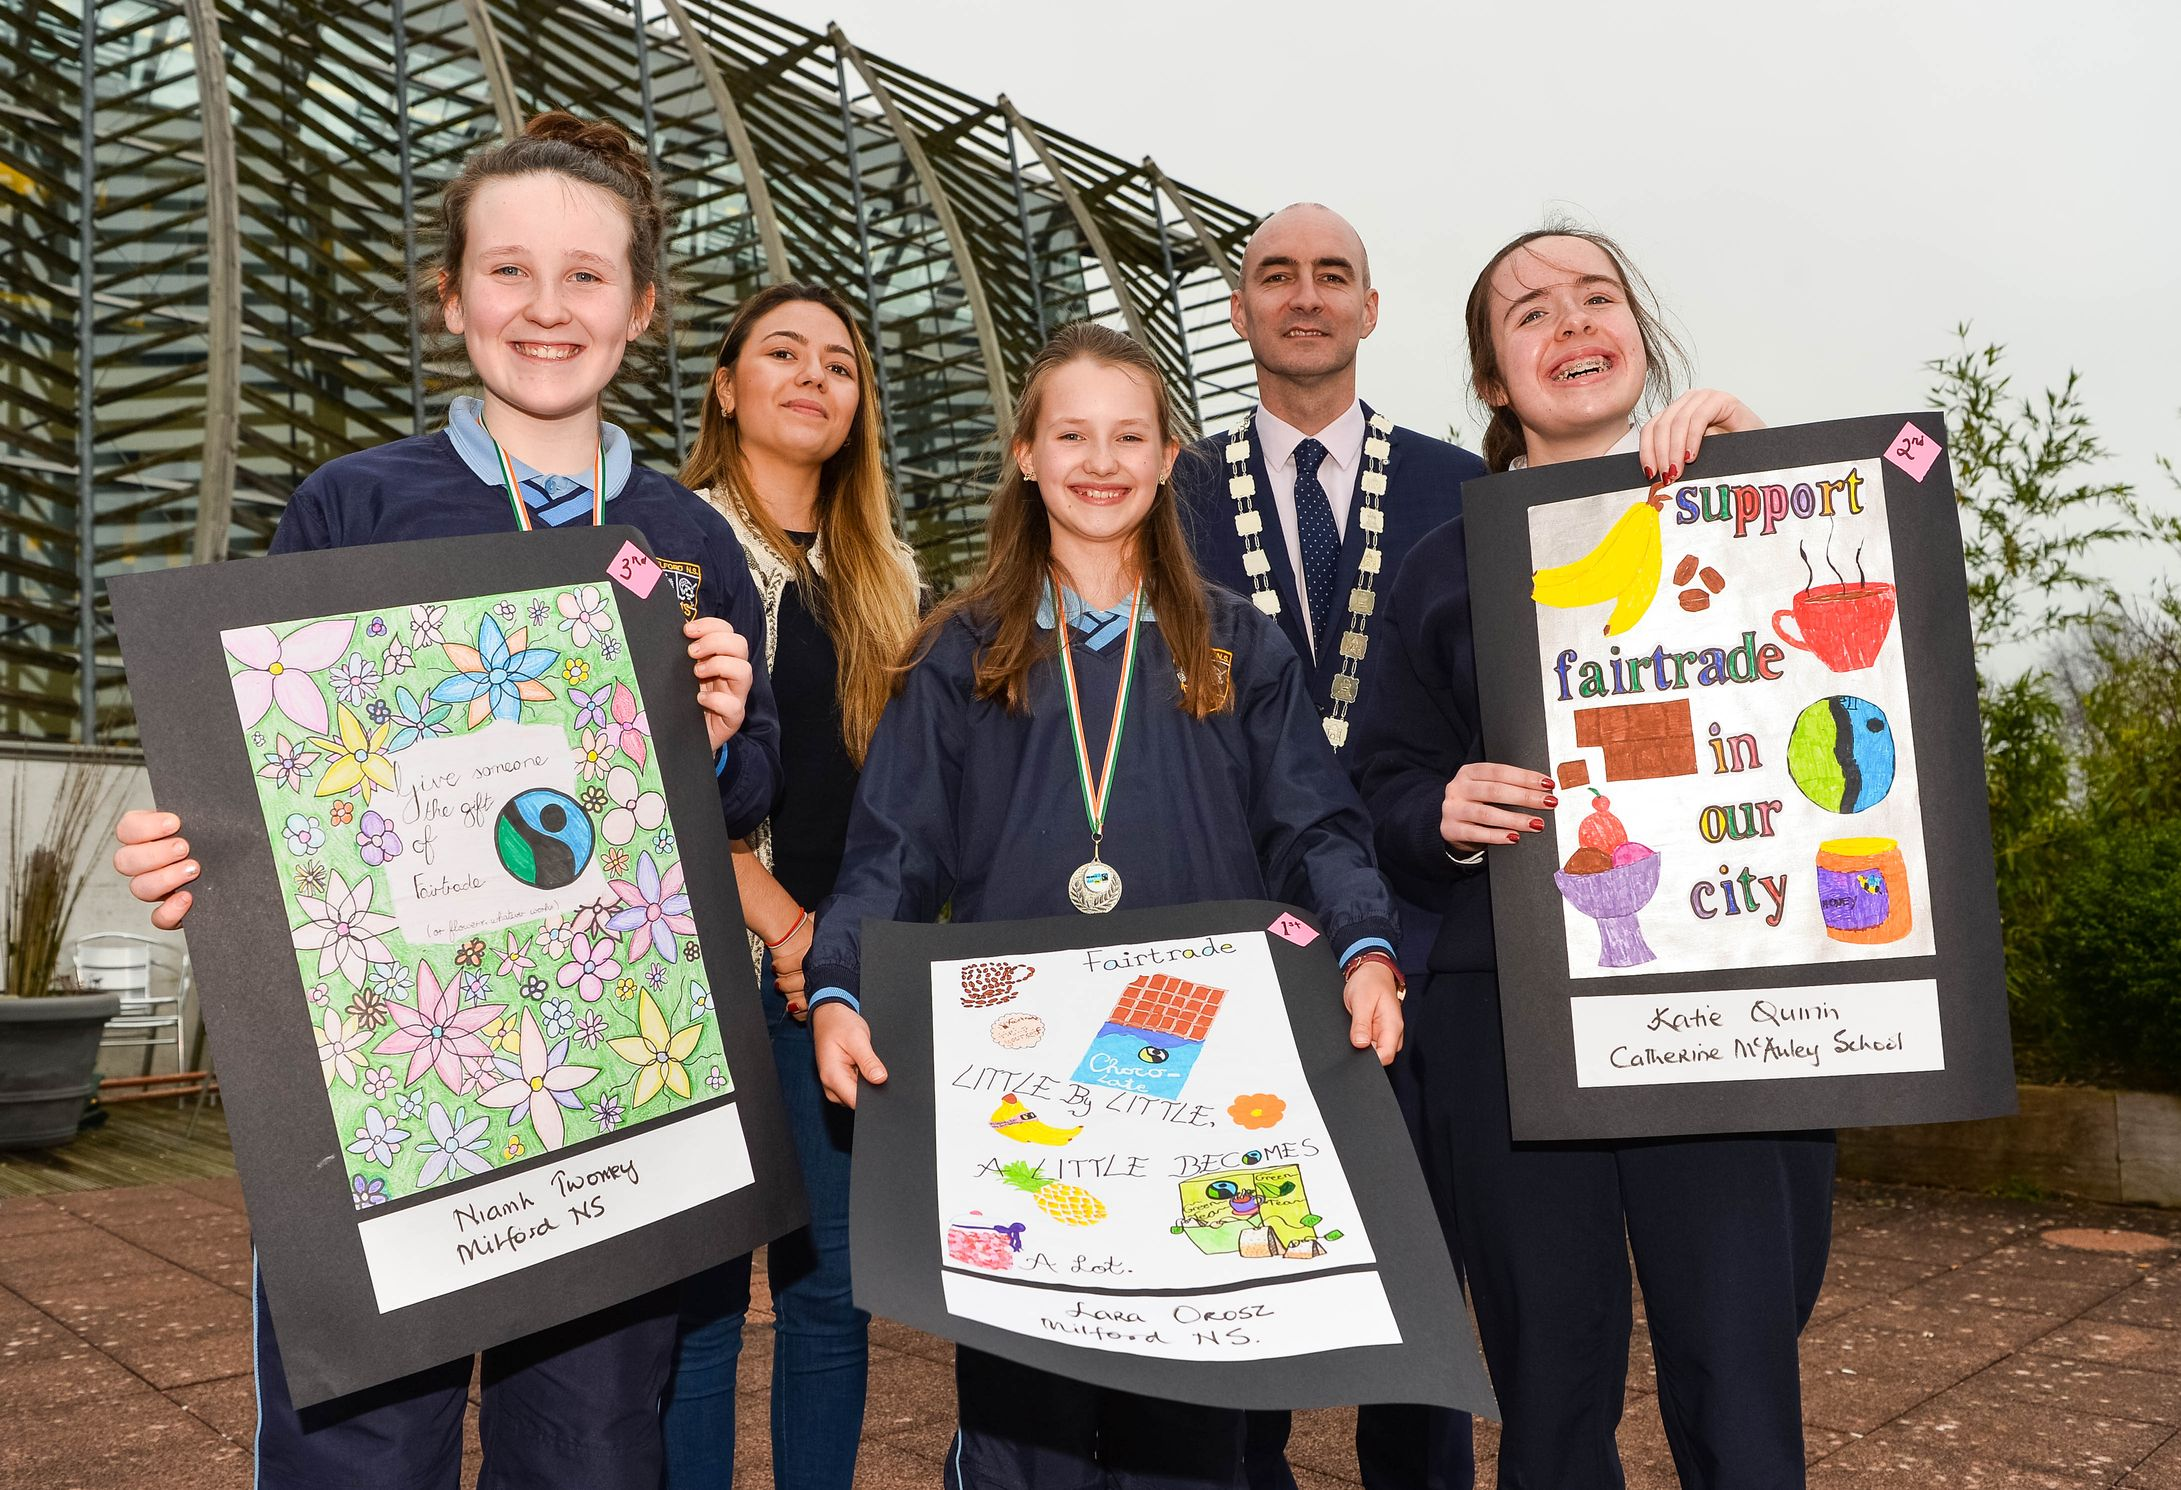 limerick fairtrade fortnight 2019